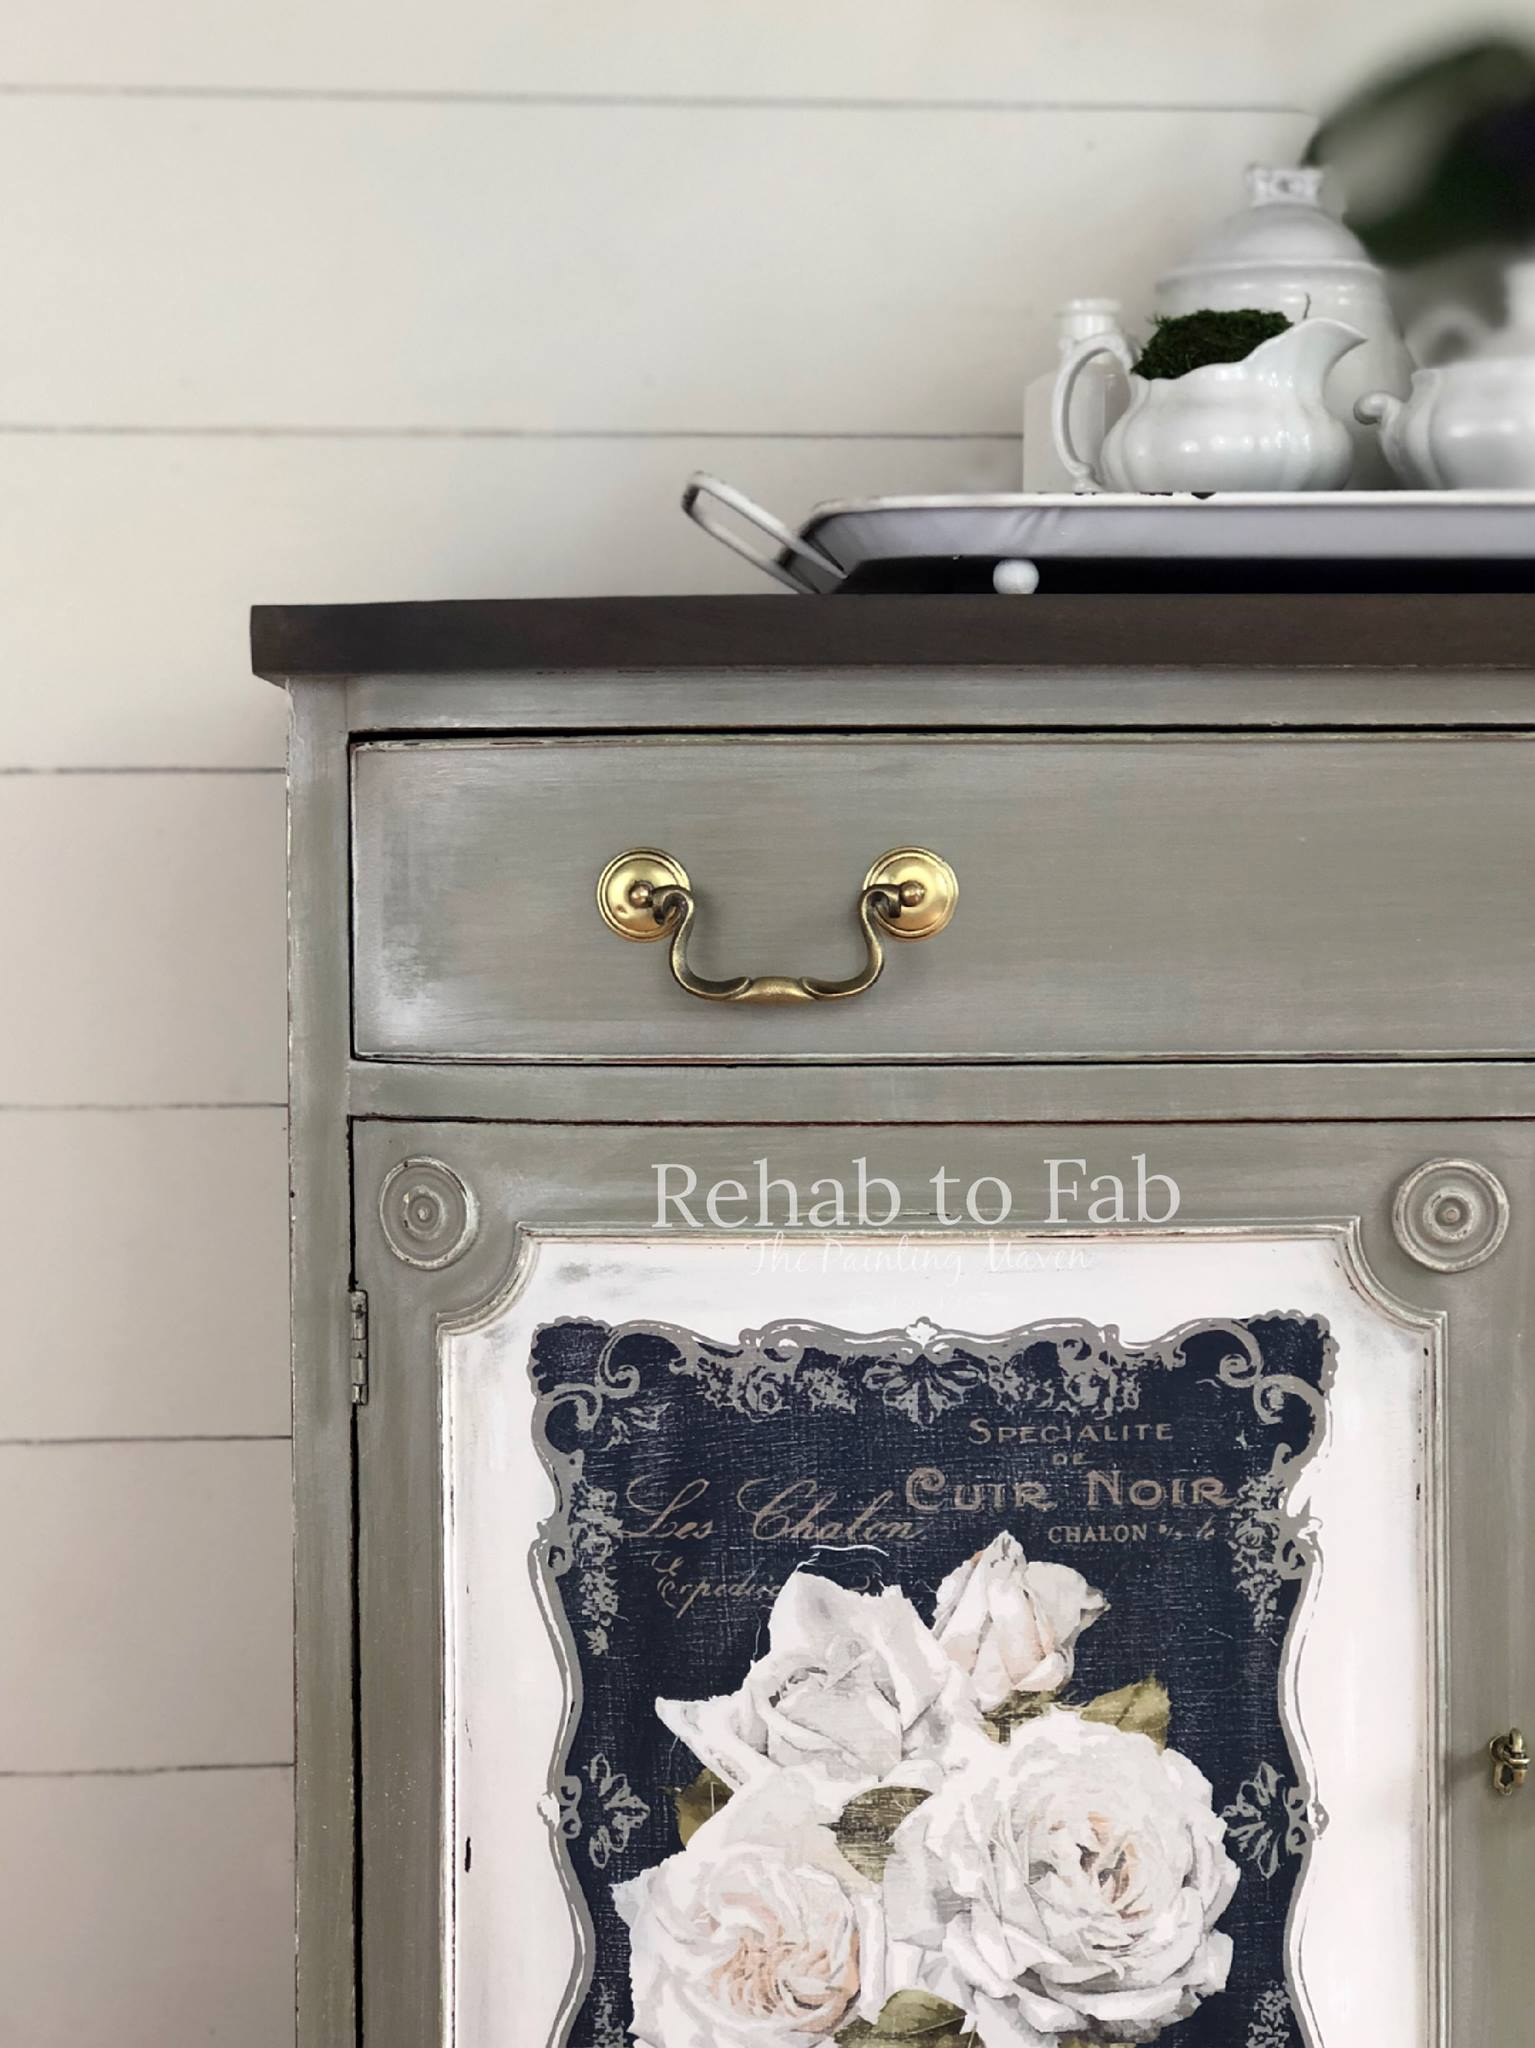 To give the transfers a vintage worn look, use fine grit sandpaper over the design. It matches the blended paint finish perfectly. She has the magic touch when it comes to finishes...